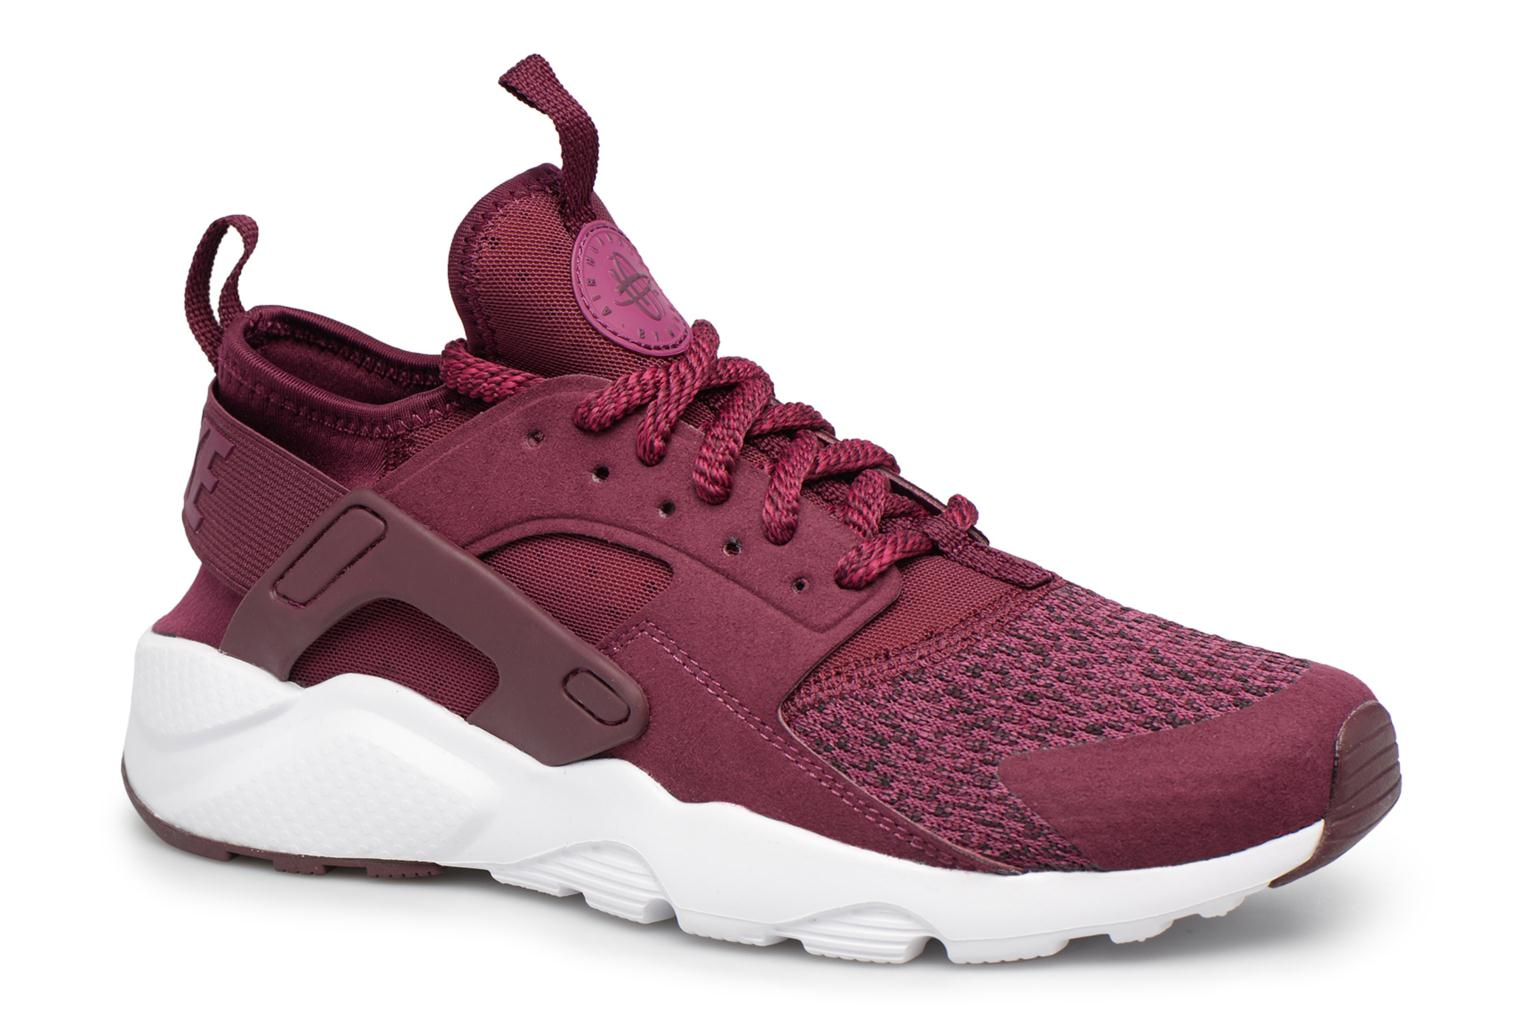 official photos 70563 7c74e ... coupon code for baskets nike air huarache run ultra se gs bordeaux vue  détail paire d81e1